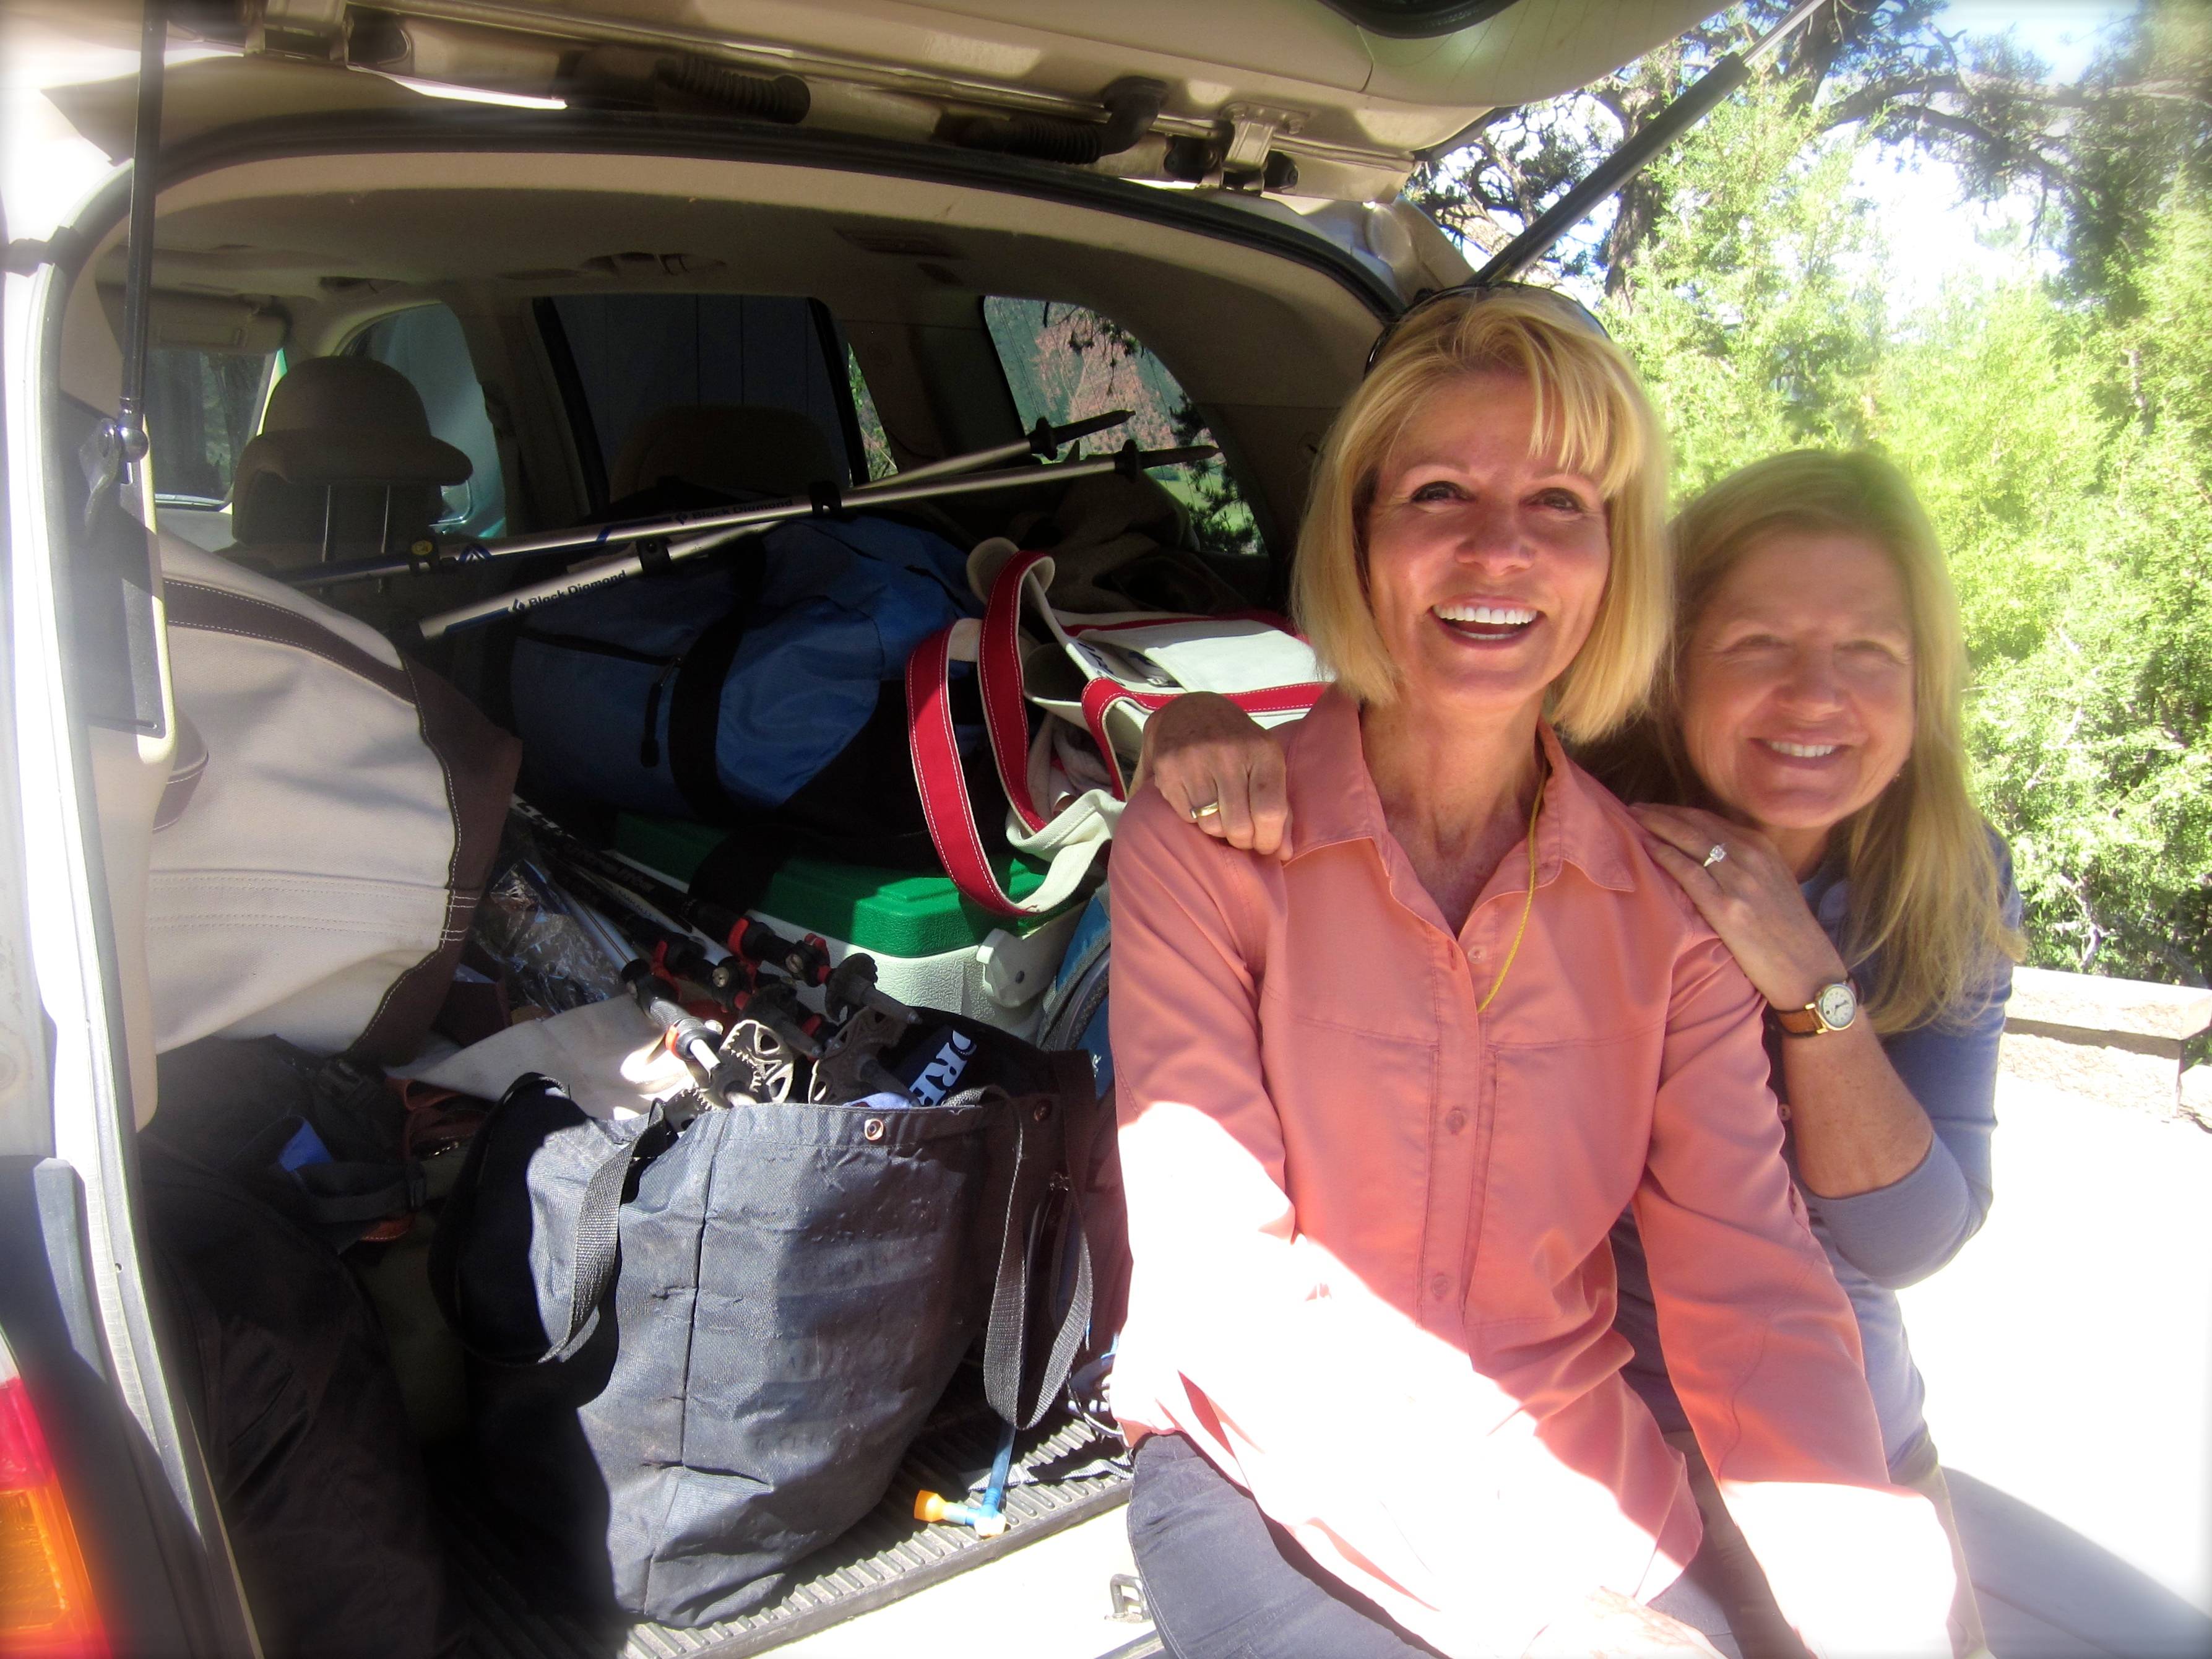 DonnaC and Francine are unable to explain why an overnight trip with four women requires all this luggage.(So, they smiled instead.)